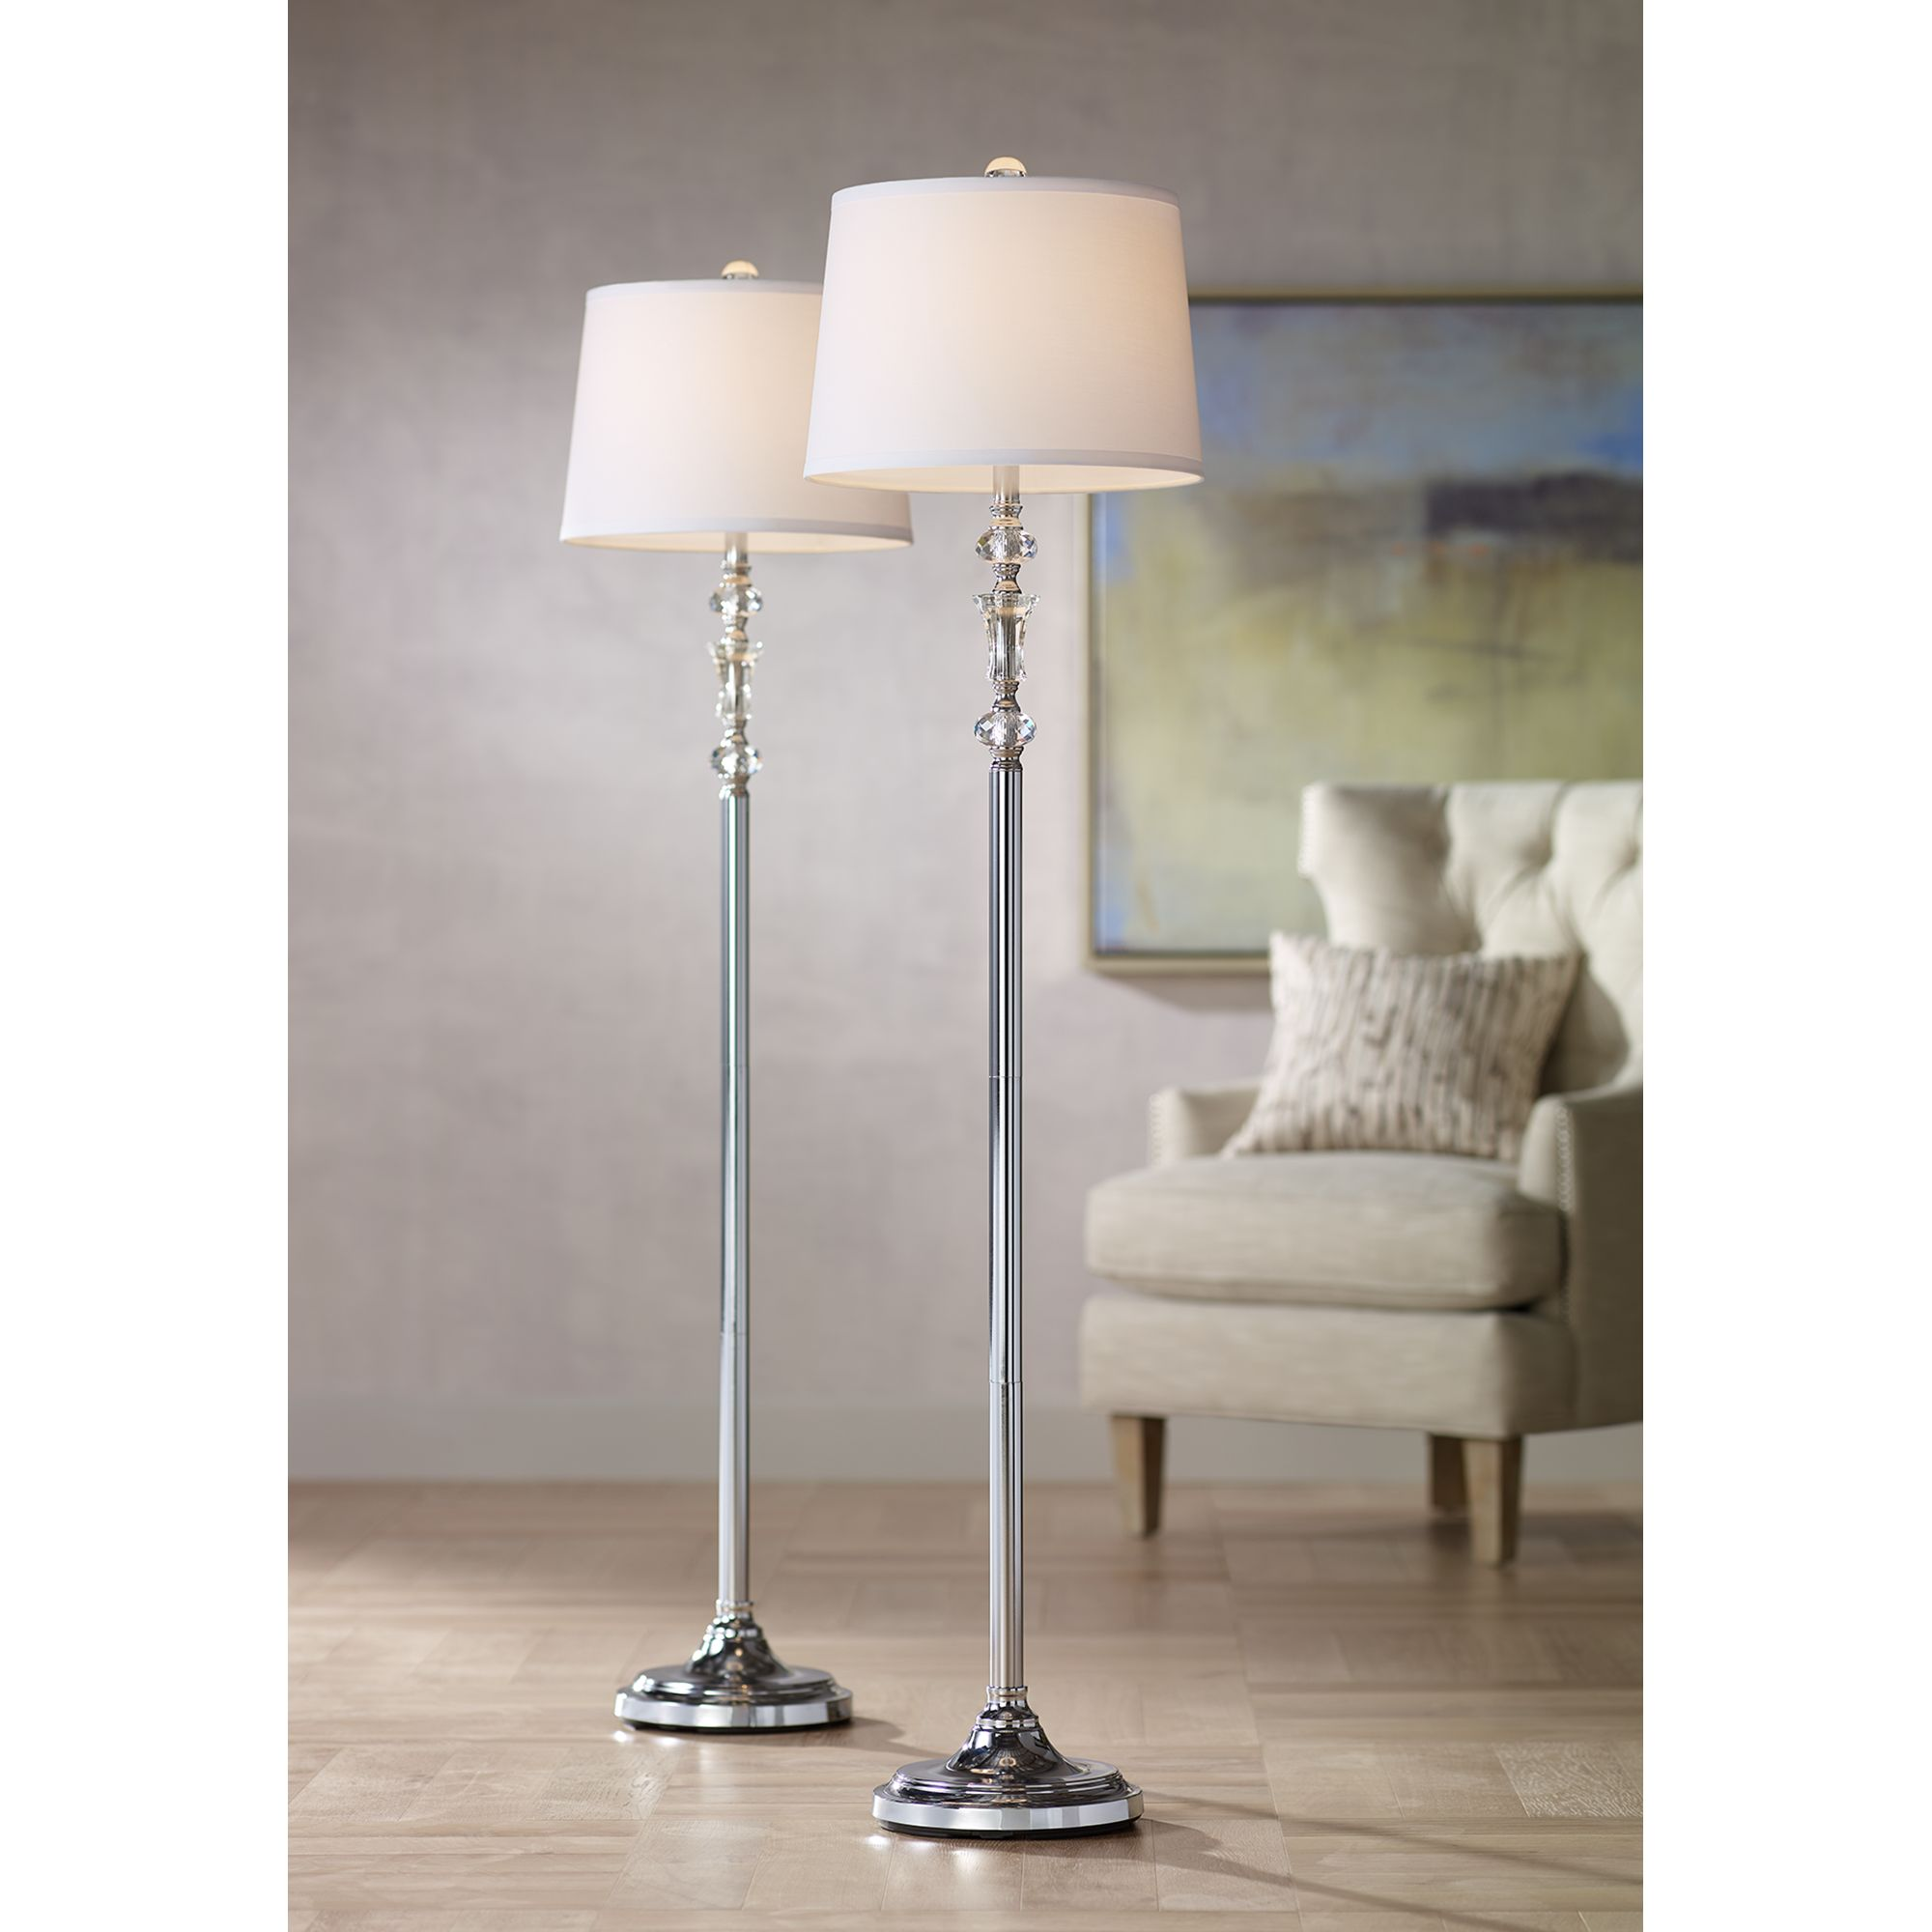 360 Lighting Modern Floor Lamps Set of 2 Polished Steel Crystal Glass White  Fabric Drum Shade for Living Room Reading Bedroom